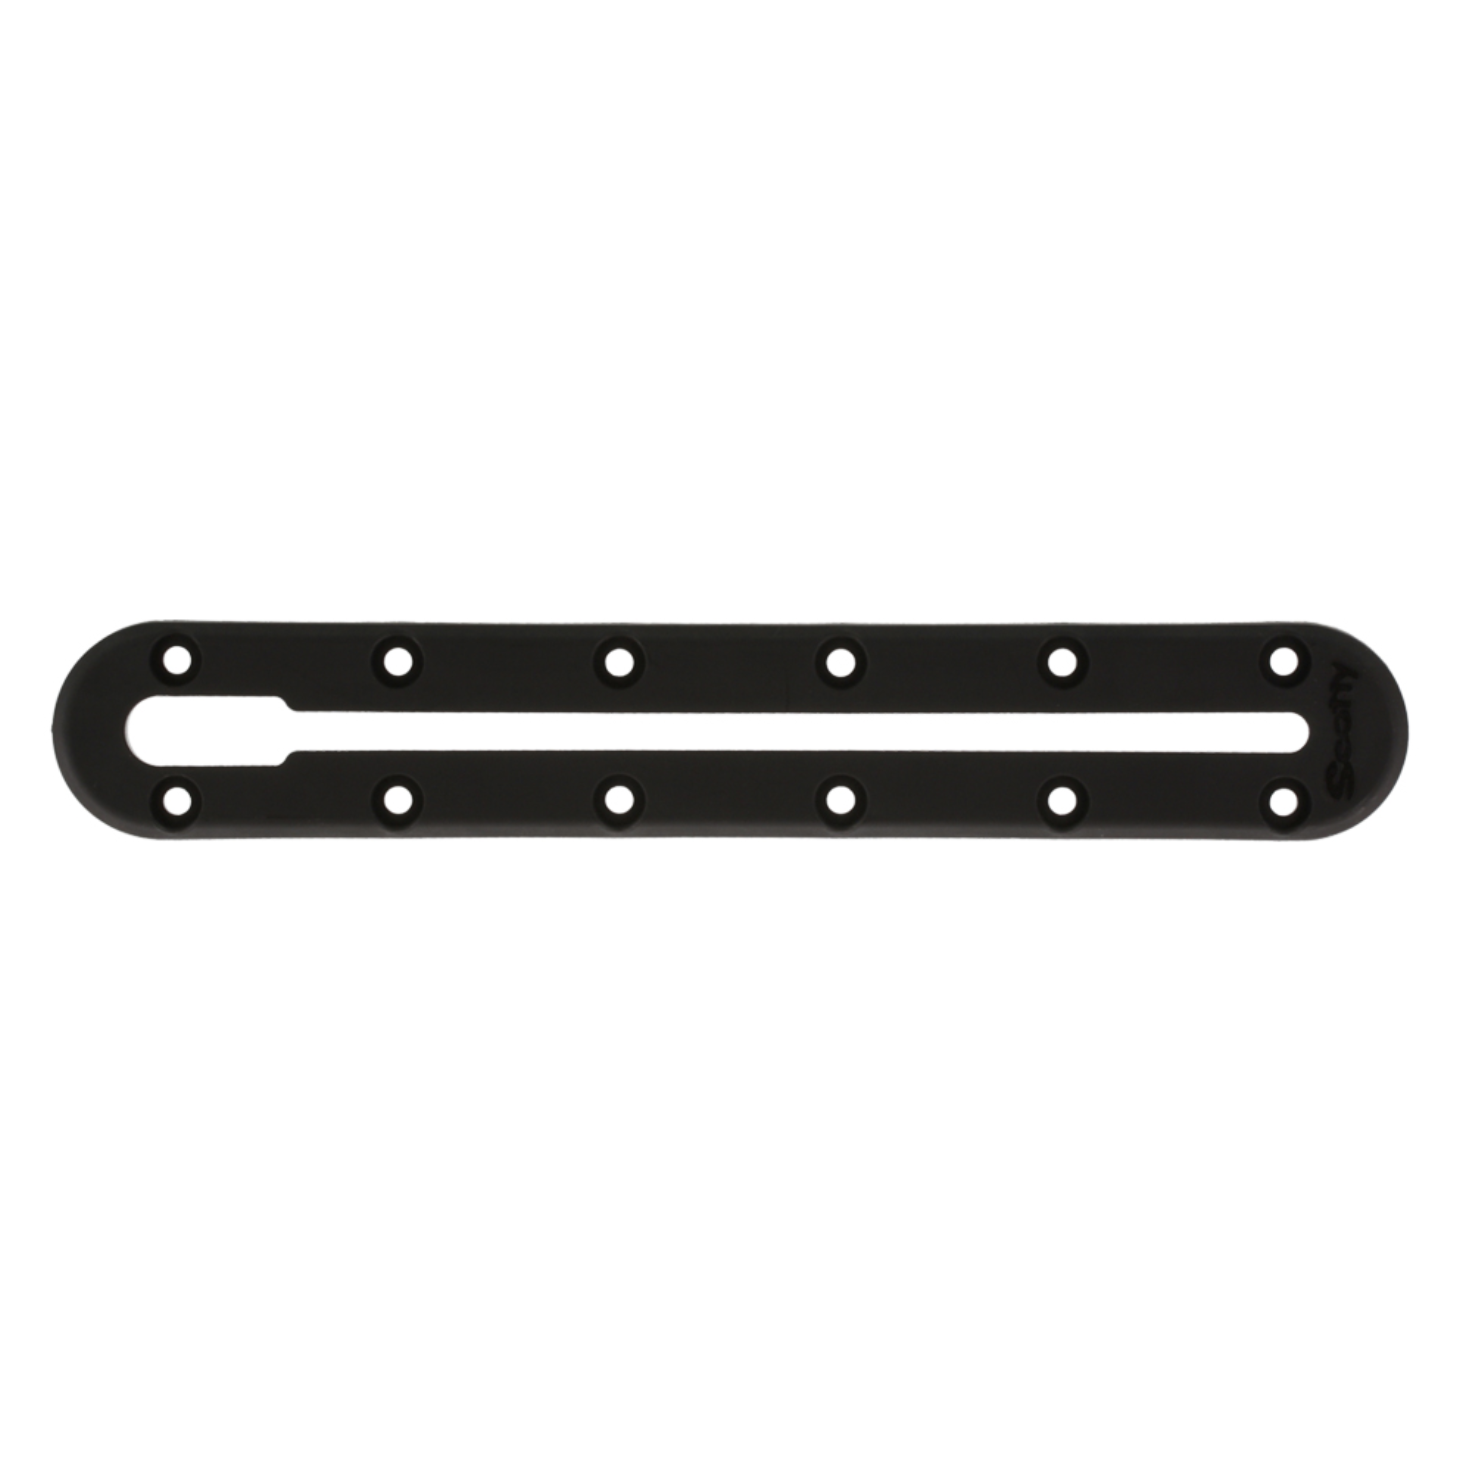 Mounts, Tracks & Accessories: 440-BK-8 Low Profile Track (8 Inch) by Scotty - Image 4742